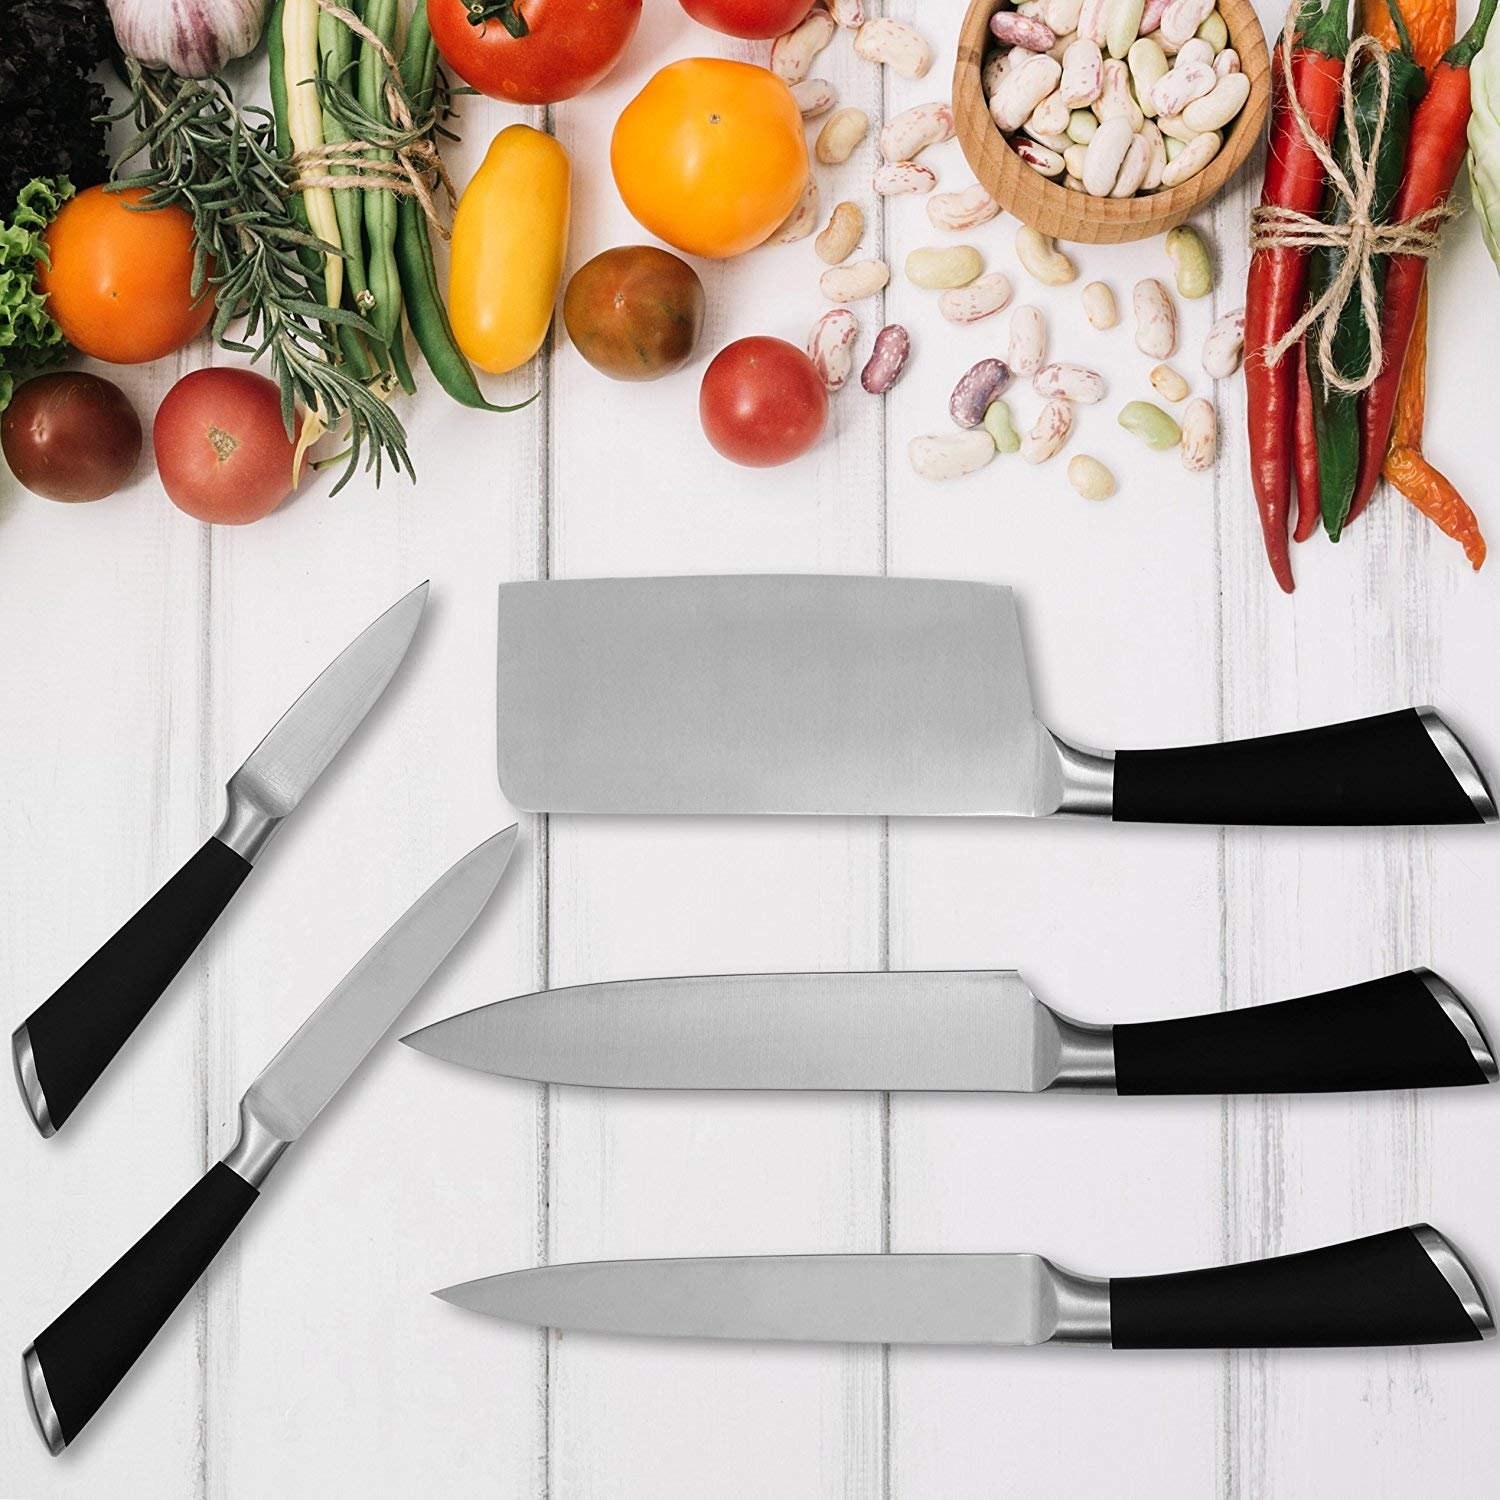 Stainless Steel Kitchen Knife Set with Rotating Stand  Professional Kitchen Knife Set Rotating Holder